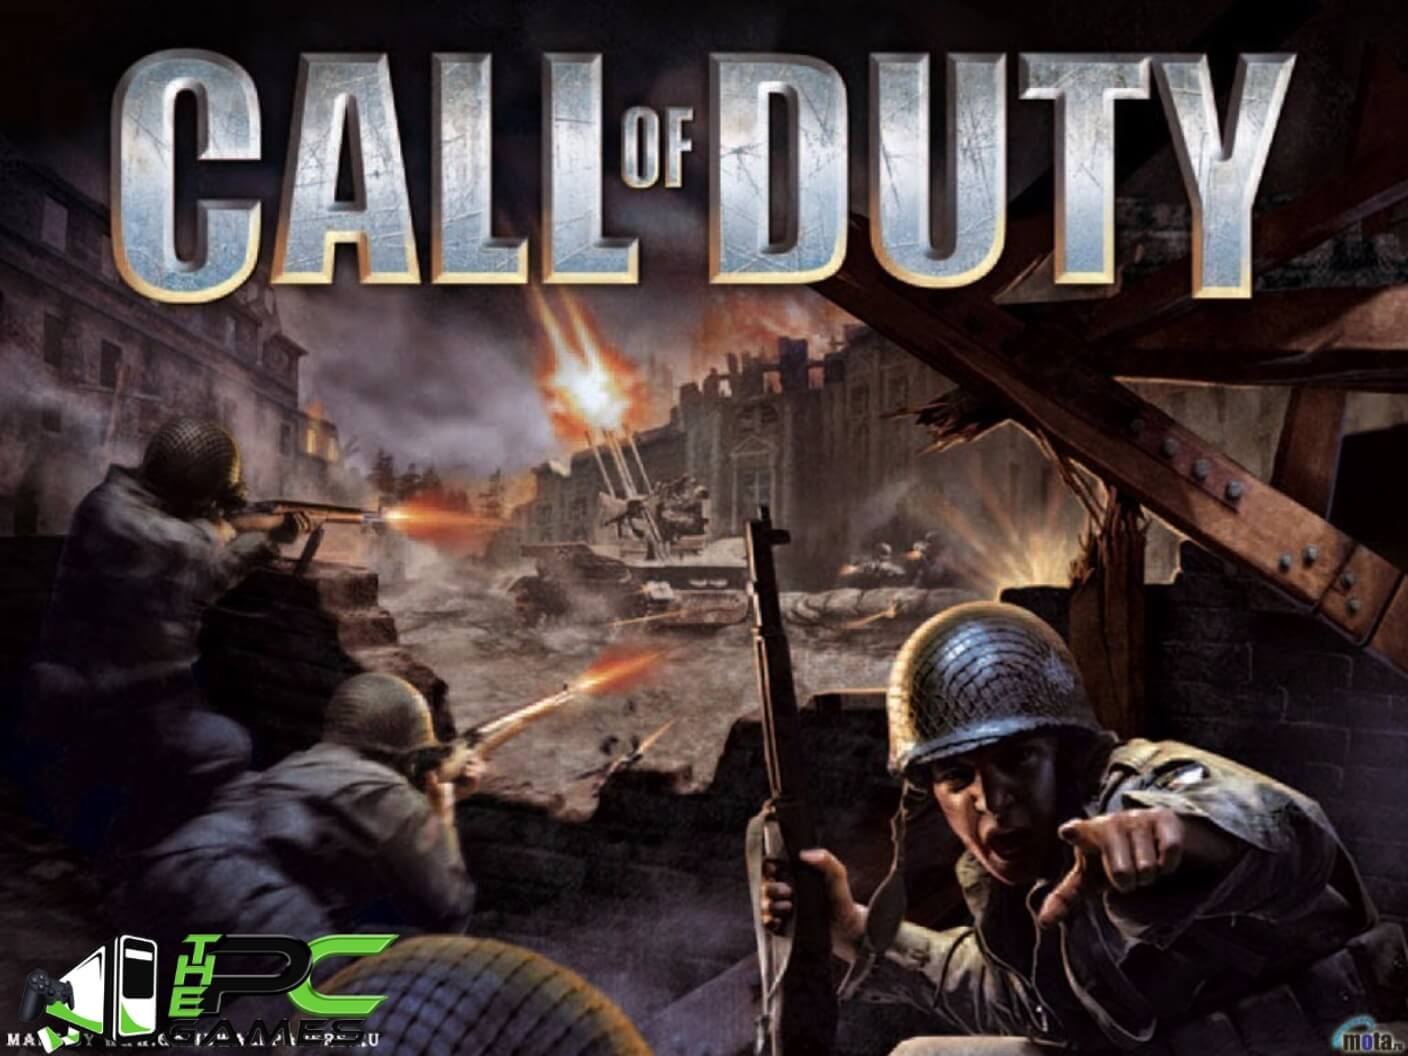 Cod 5 waw lvl 65 hack zip full game free pc, download, play. Cod 5.